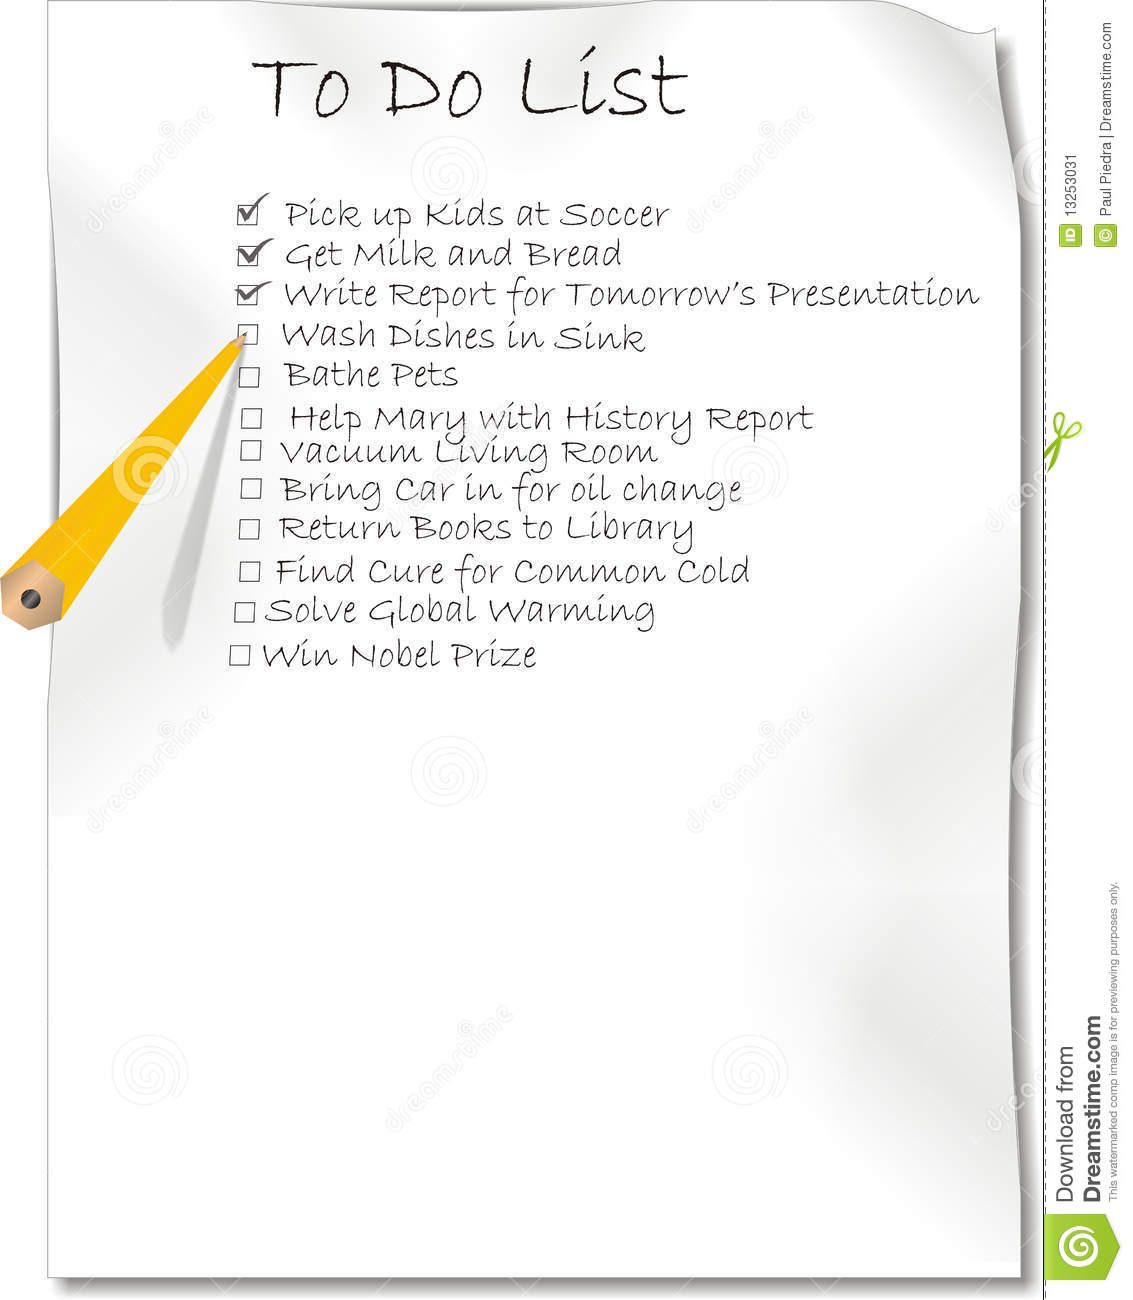 Pencil Writing A To Do List Stock Image - Image: 13253031